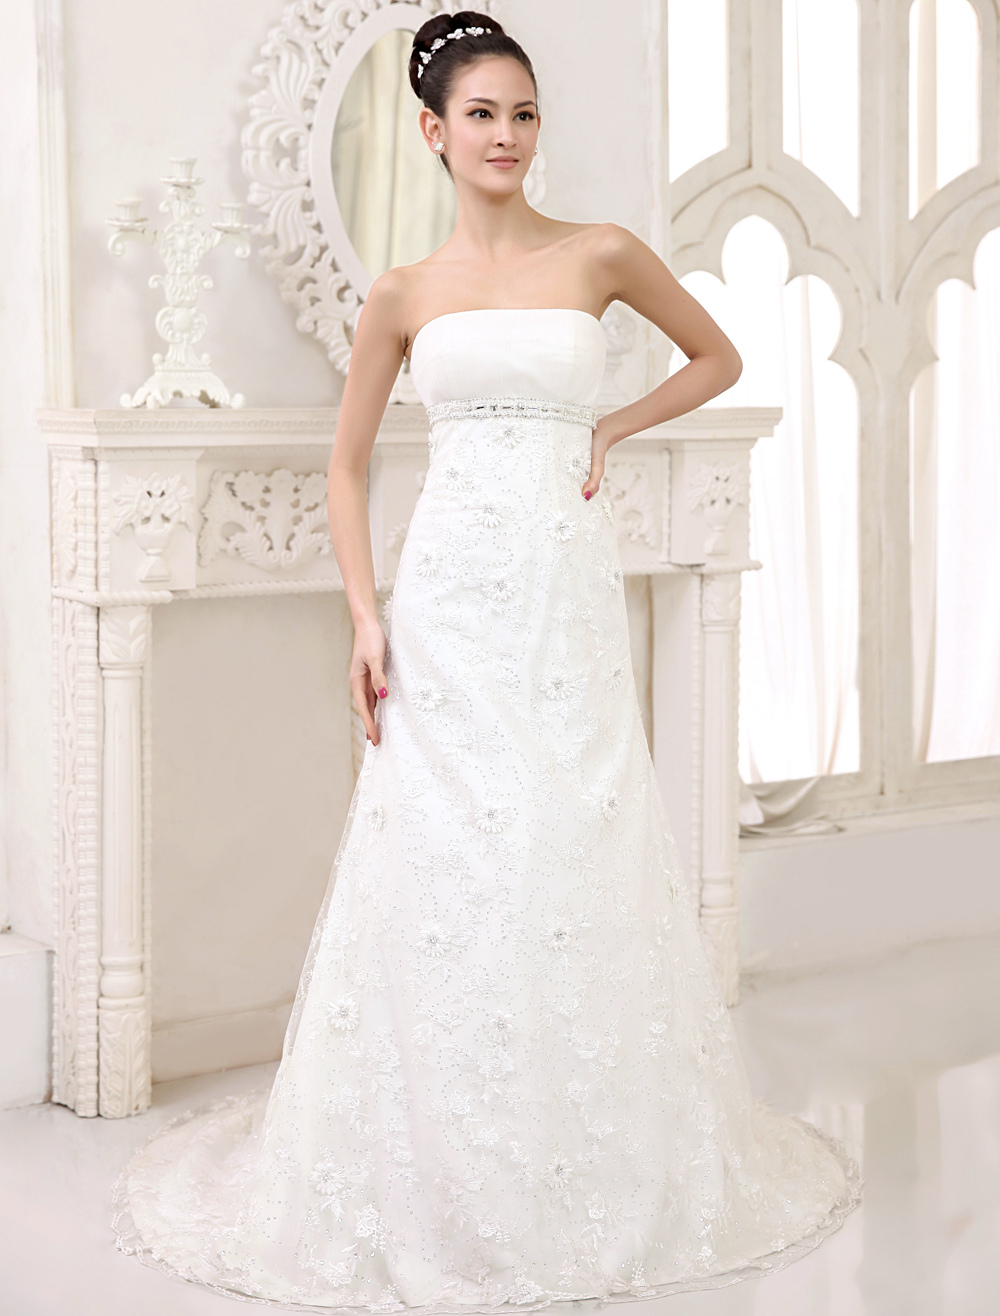 Ivory A-line Strapless Lace Court Train Lace Brides Wedding Dress